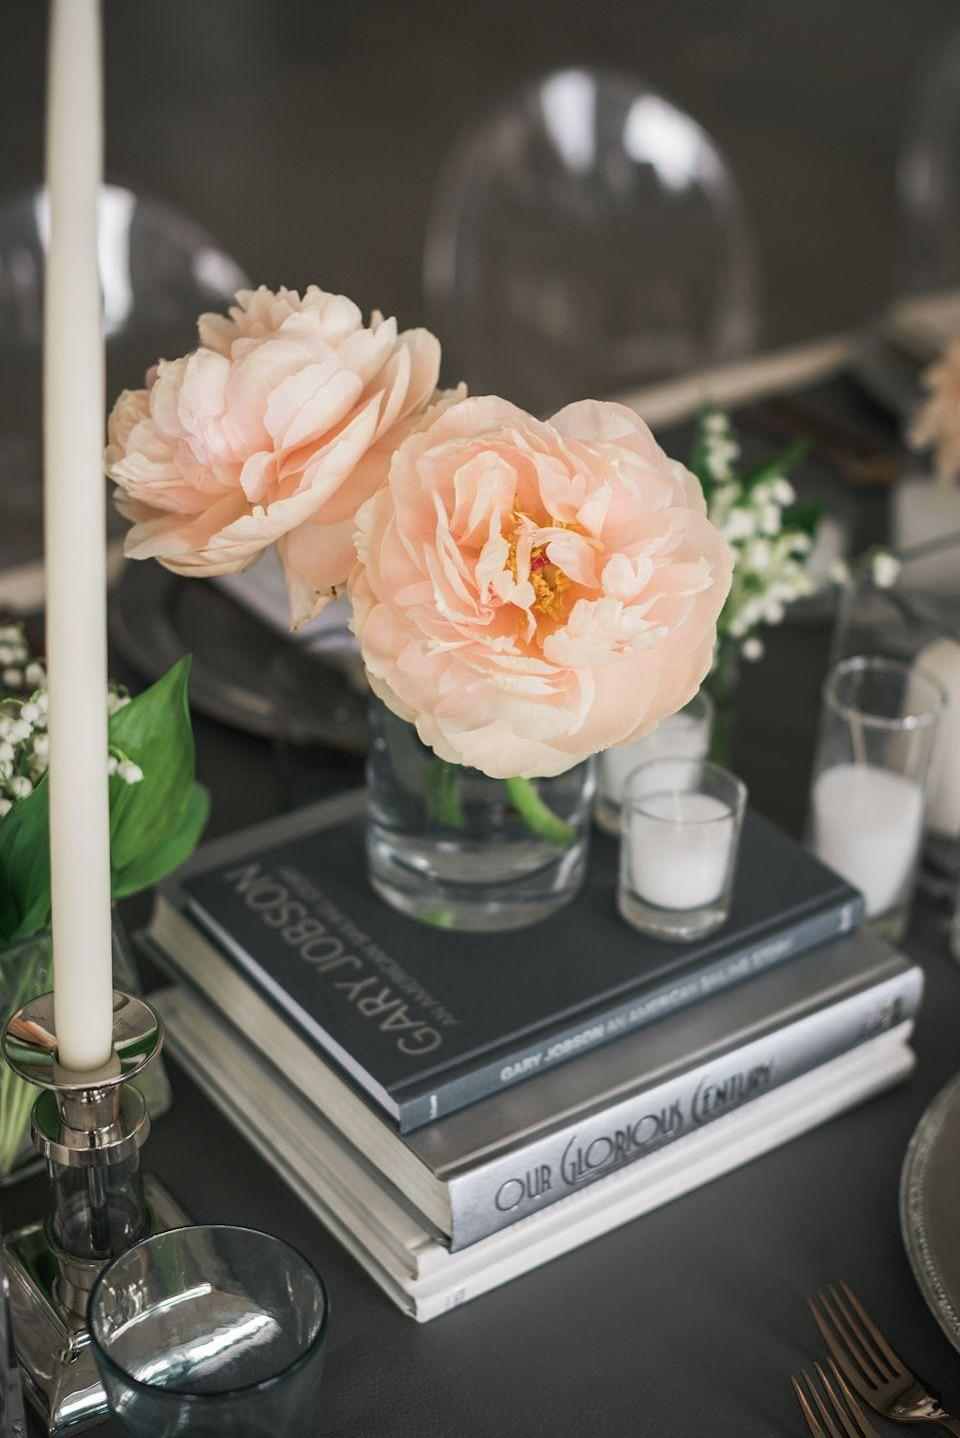 "<p>A dozen roses is the tradition, but just one or two blooms in a small vase can be equally charming (and saves space on a crowded dinner table!). Here, <a href=""https://www.elledecor.com/life-culture/g3459/rose-color-meaning/"" rel=""nofollow noopener"" target=""_blank"" data-ylk=""slk:peach roses"" class=""link rapid-noclick-resp"">peach roses</a> situated in a vase on stacked books make for a charming centerpiece. </p><p><em>Via <a href=""http://decorationinc.com/"" rel=""nofollow noopener"" target=""_blank"" data-ylk=""slk:Decoration Inc"" class=""link rapid-noclick-resp"">Decoration Inc</a></em></p><p><a class=""link rapid-noclick-resp"" href=""https://go.redirectingat.com?id=74968X1596630&url=https%3A%2F%2Fglobalrose.com%2Fflowers%2Fvday-1-dozen-peach-roses-f.html%3Fgclid%3DCj0KCQiAsvTxBRDkARIsAH4W_j9KdMlL8PiZKfhUmidkzHyDHE8Tj1WDW0IkK13OmLmGAyNPKc9iEwUaAk2_EALw_wcB&sref=https%3A%2F%2Fwww.elledecor.com%2Flife-culture%2Ffun-at-home%2Fg2387%2Fvalentines-day-decor%2F"" rel=""nofollow noopener"" target=""_blank"" data-ylk=""slk:GET THE LOOK"">GET THE LOOK</a><em><br>Peach Roses, Global Rose, $54</em></p>"